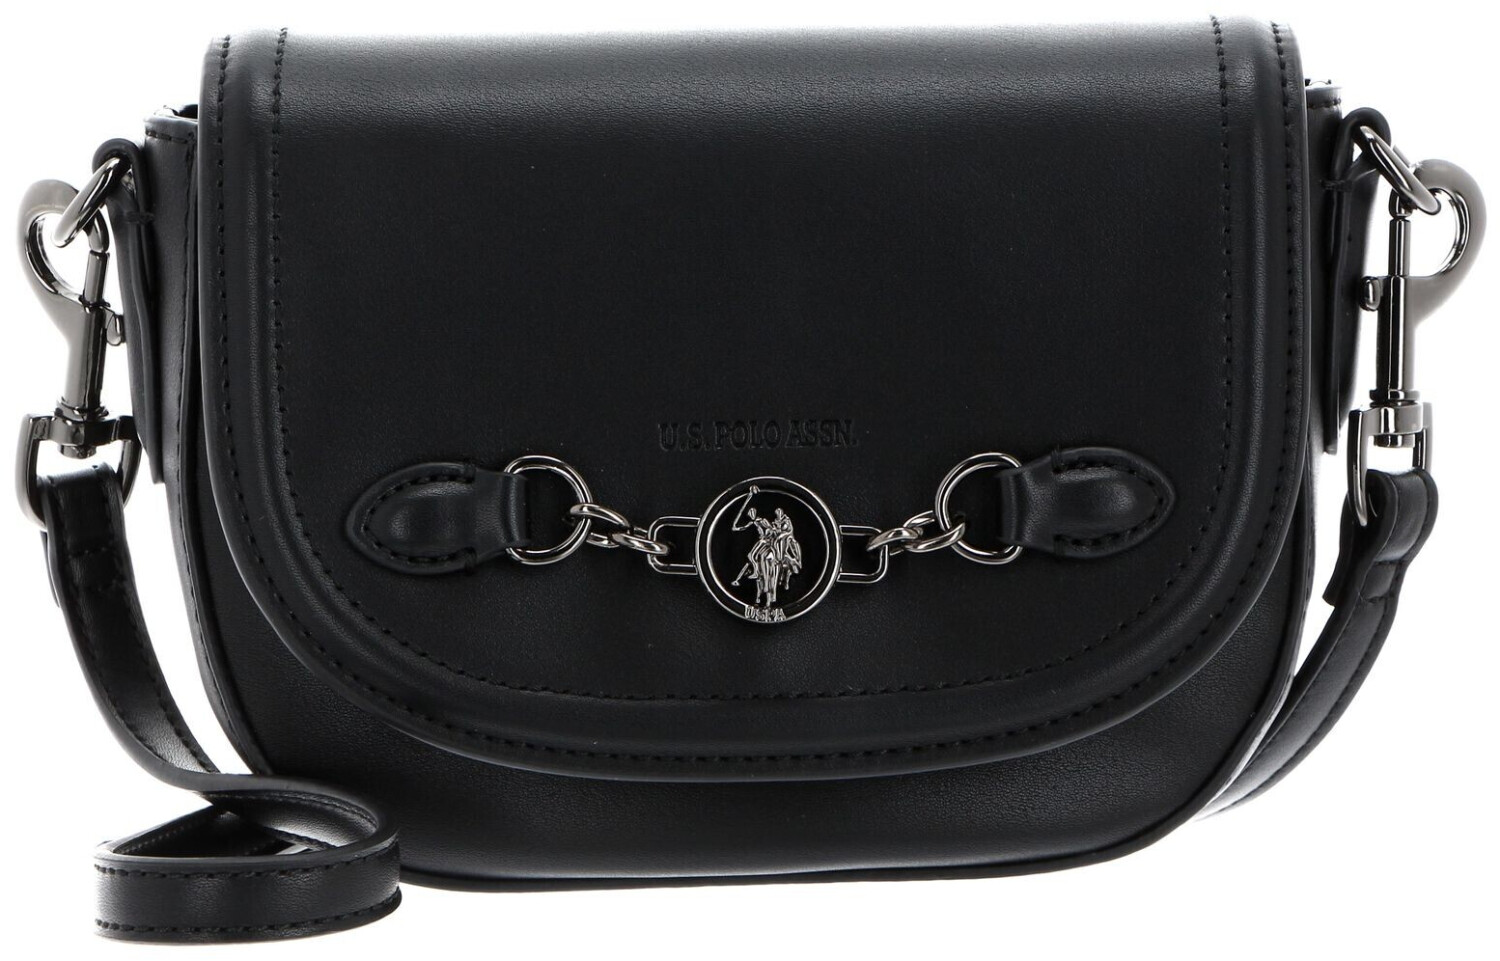 U.S. Polo Assn. Greatwood Shoulder with Flap